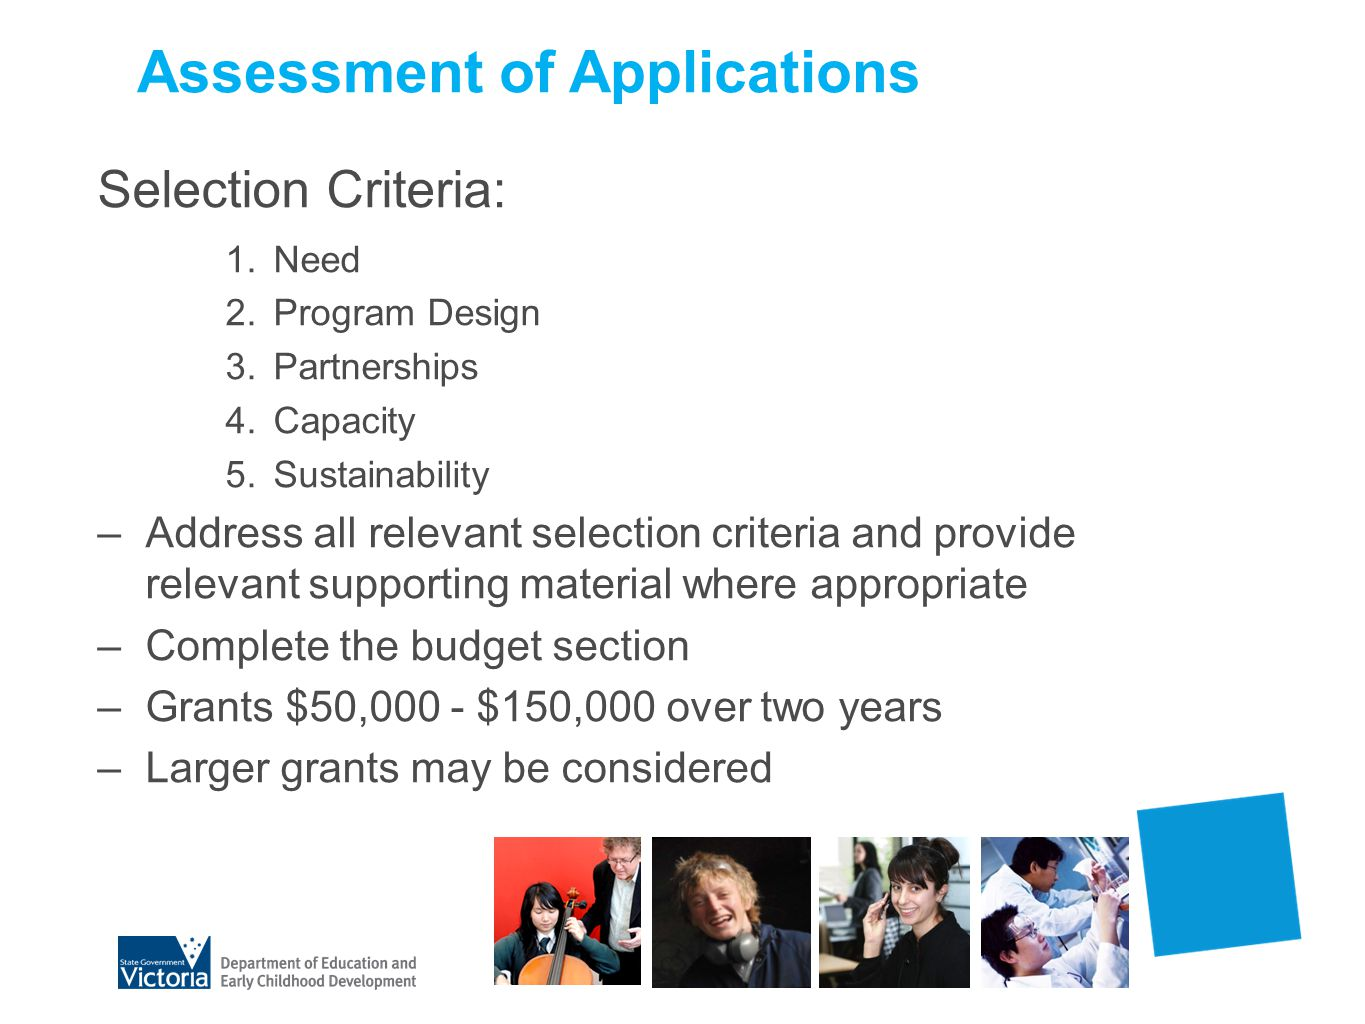 Assessment of Applications Selection Criteria: 1.Need 2.Program Design 3.Partnerships 4.Capacity 5.Sustainability –Address all relevant selection criteria and provide relevant supporting material where appropriate –Complete the budget section –Grants $50,000 - $150,000 over two years –Larger grants may be considered